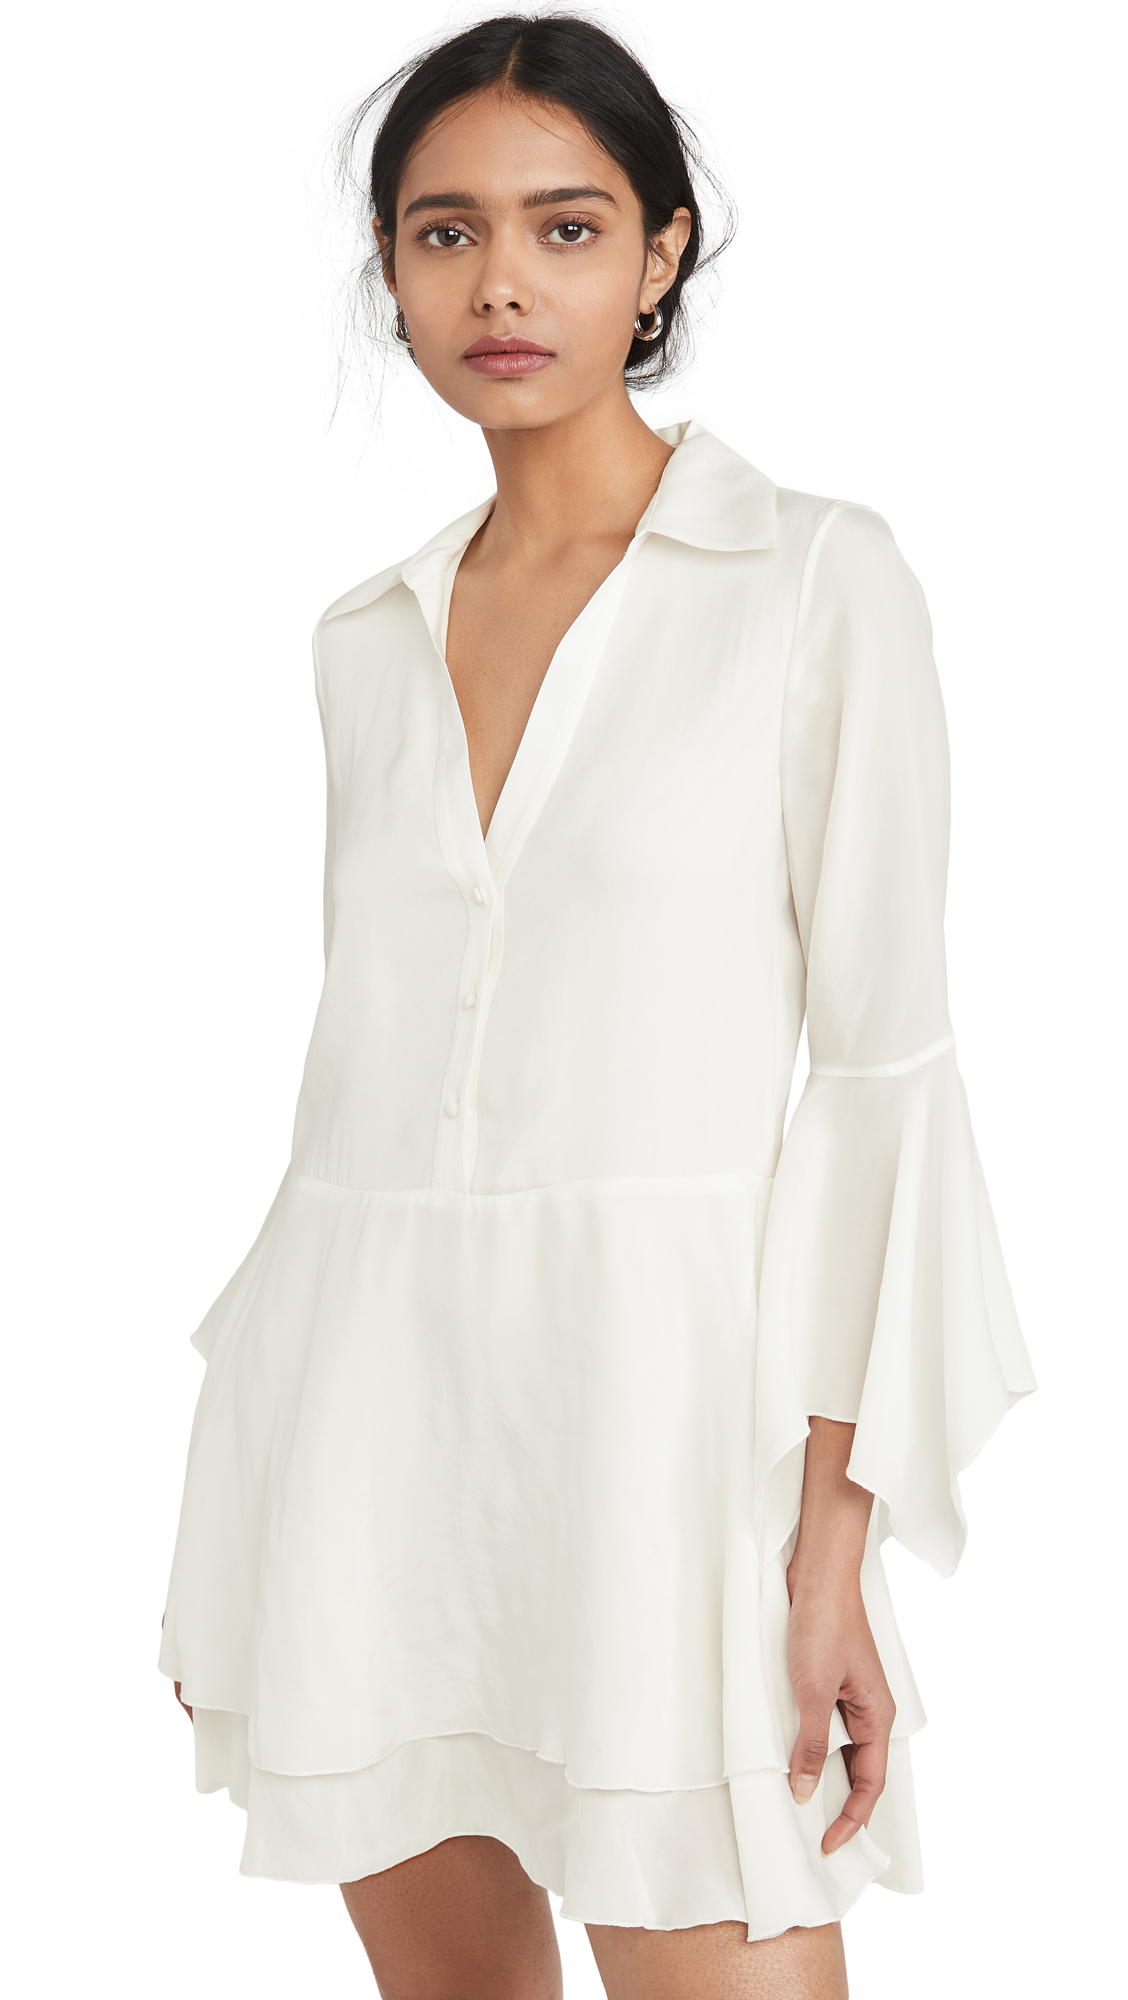 alice + olivia Priscilla Button Down Shirt Dress – 50% Off Sale